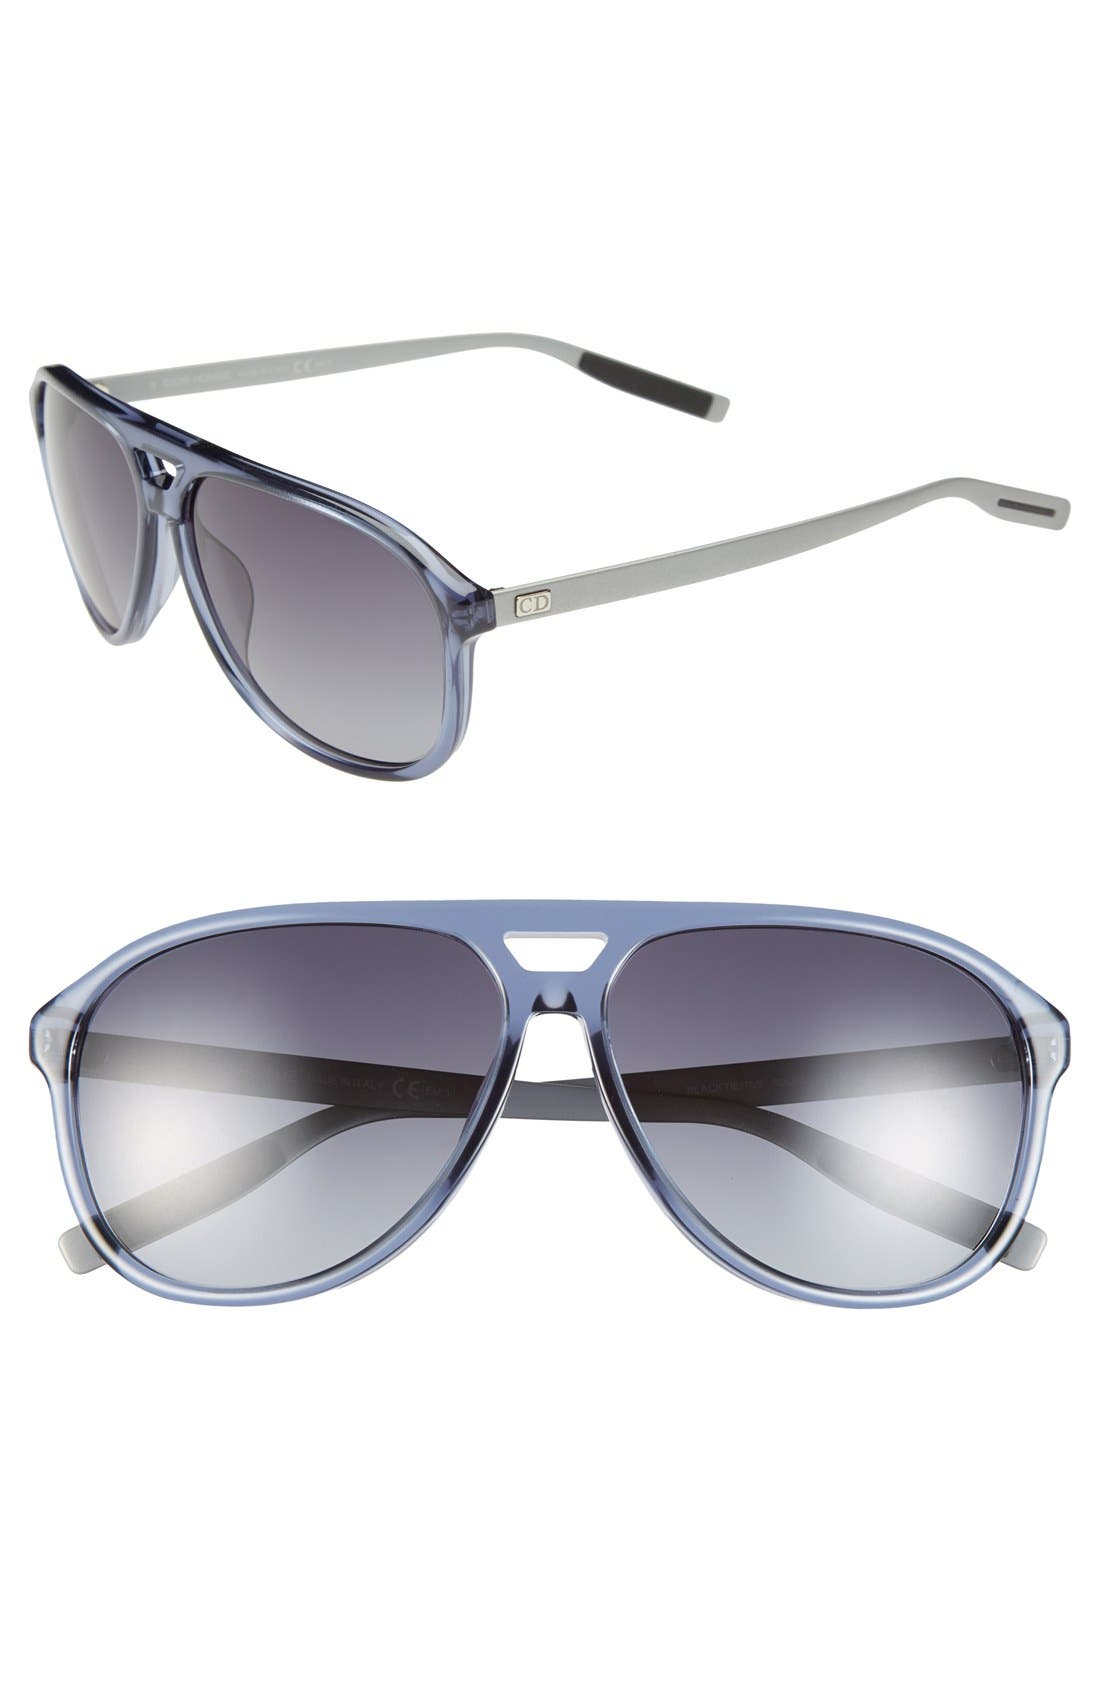 Main Image - Dior Homme 60mm Sunglasses